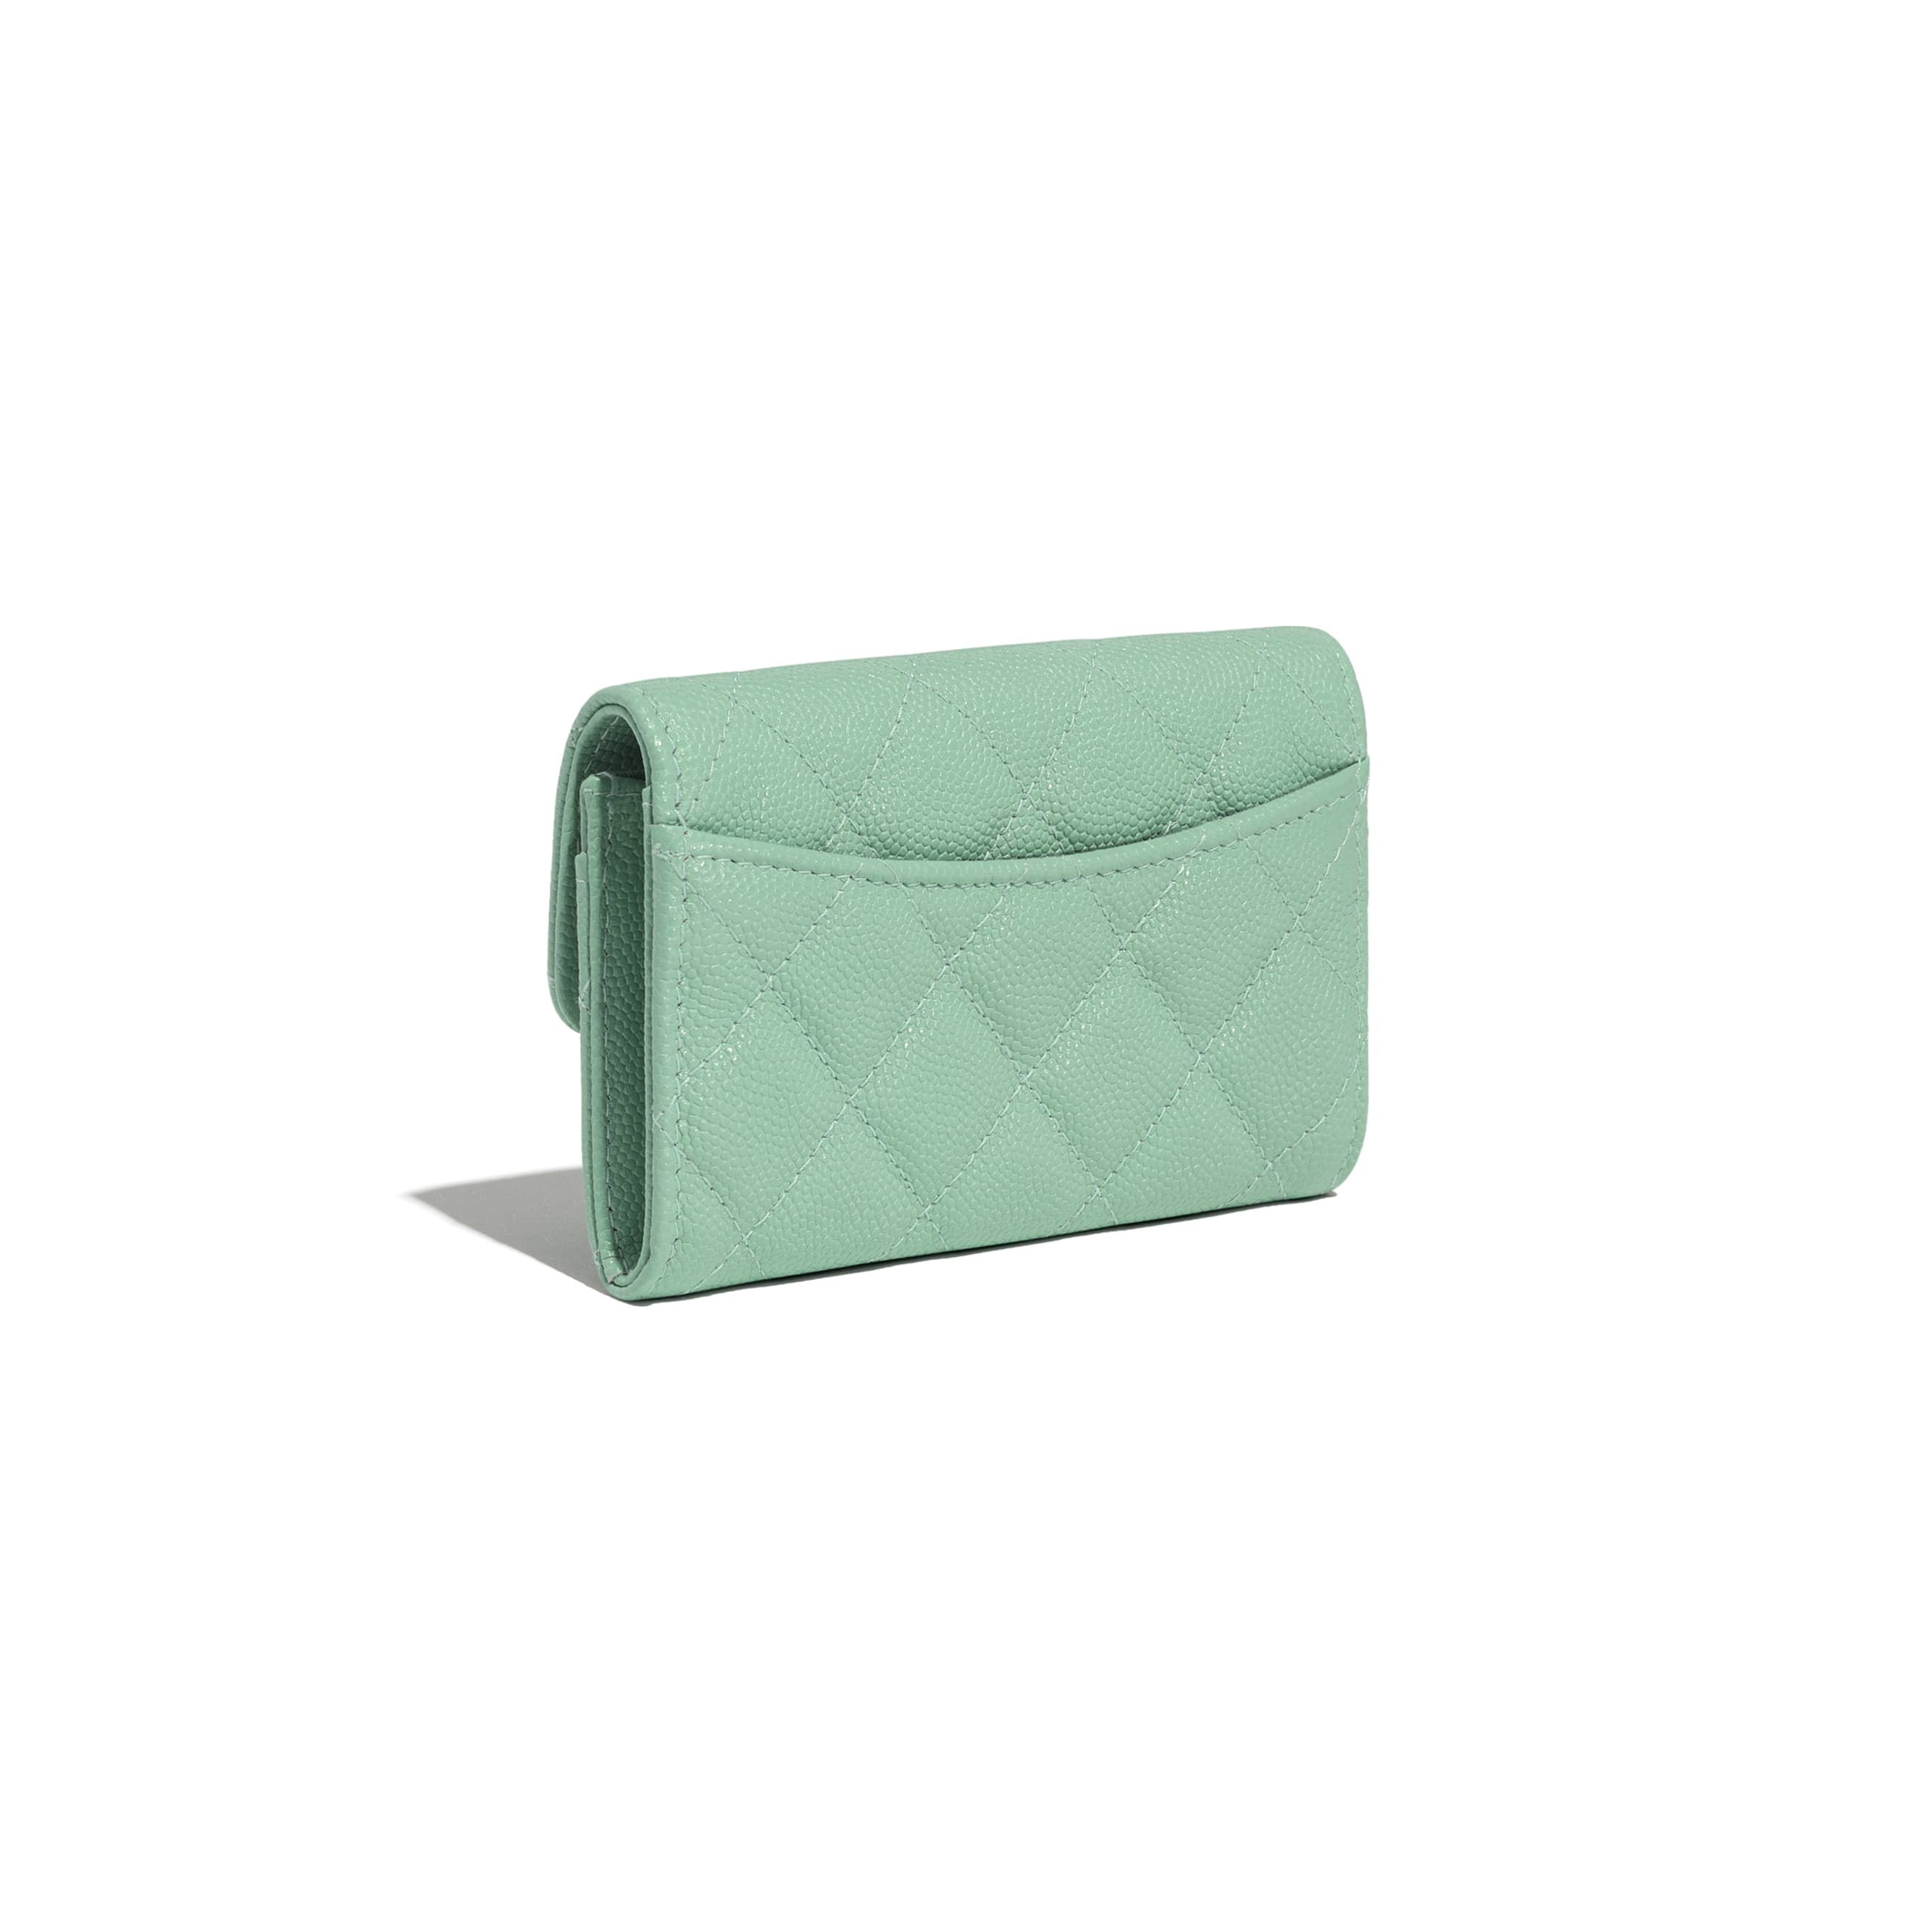 Classic Card Holder - Green - Grained Calfskin & Gold-Tone Metal - CHANEL - Extra view - see standard sized version